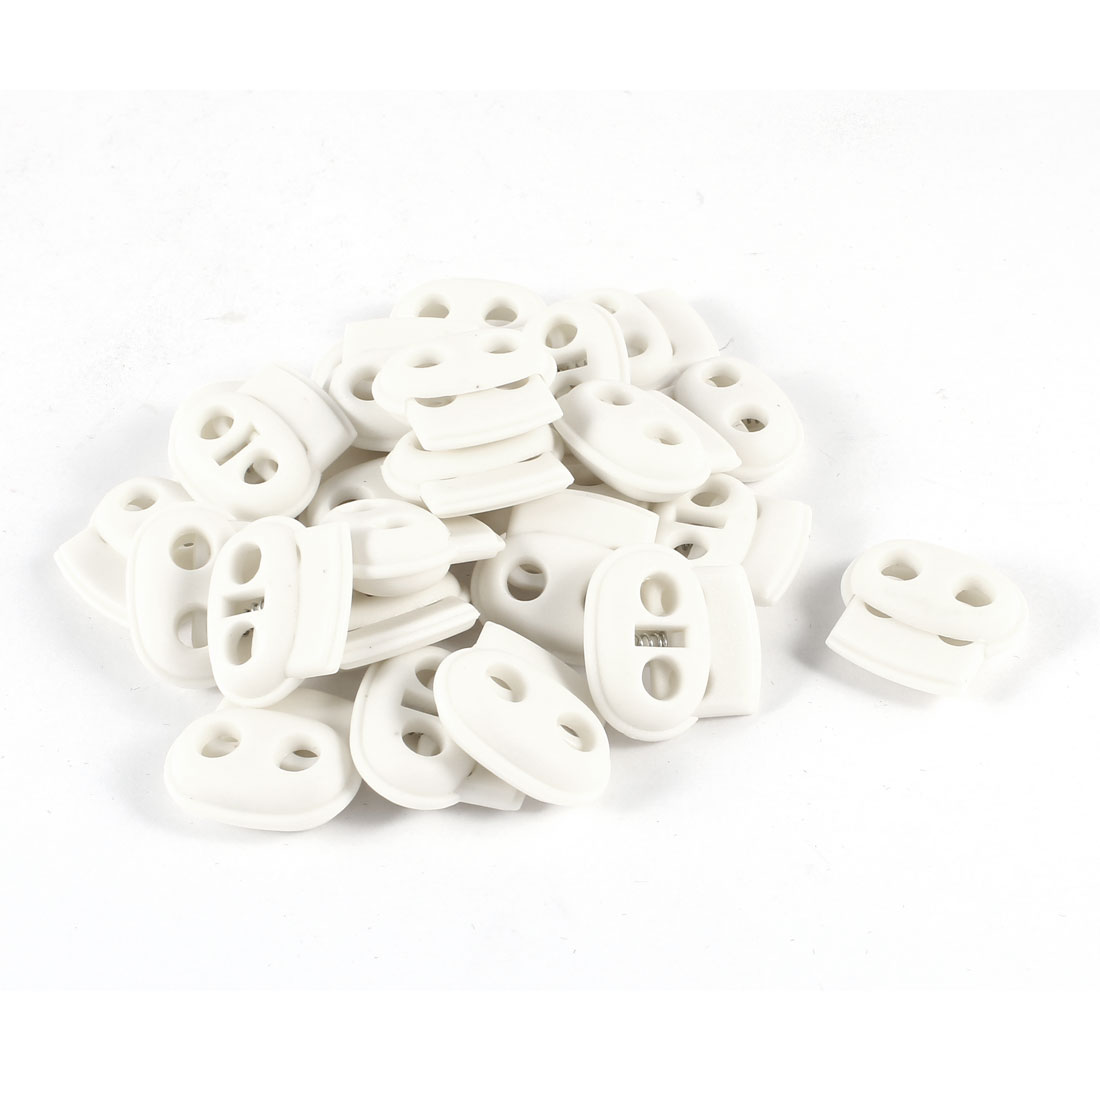 25pcs Clothing Hood Shoelace White Plastic 2 Holes 4.9mm Dia Spring Cord Lock Stopper Toggles Adjuster